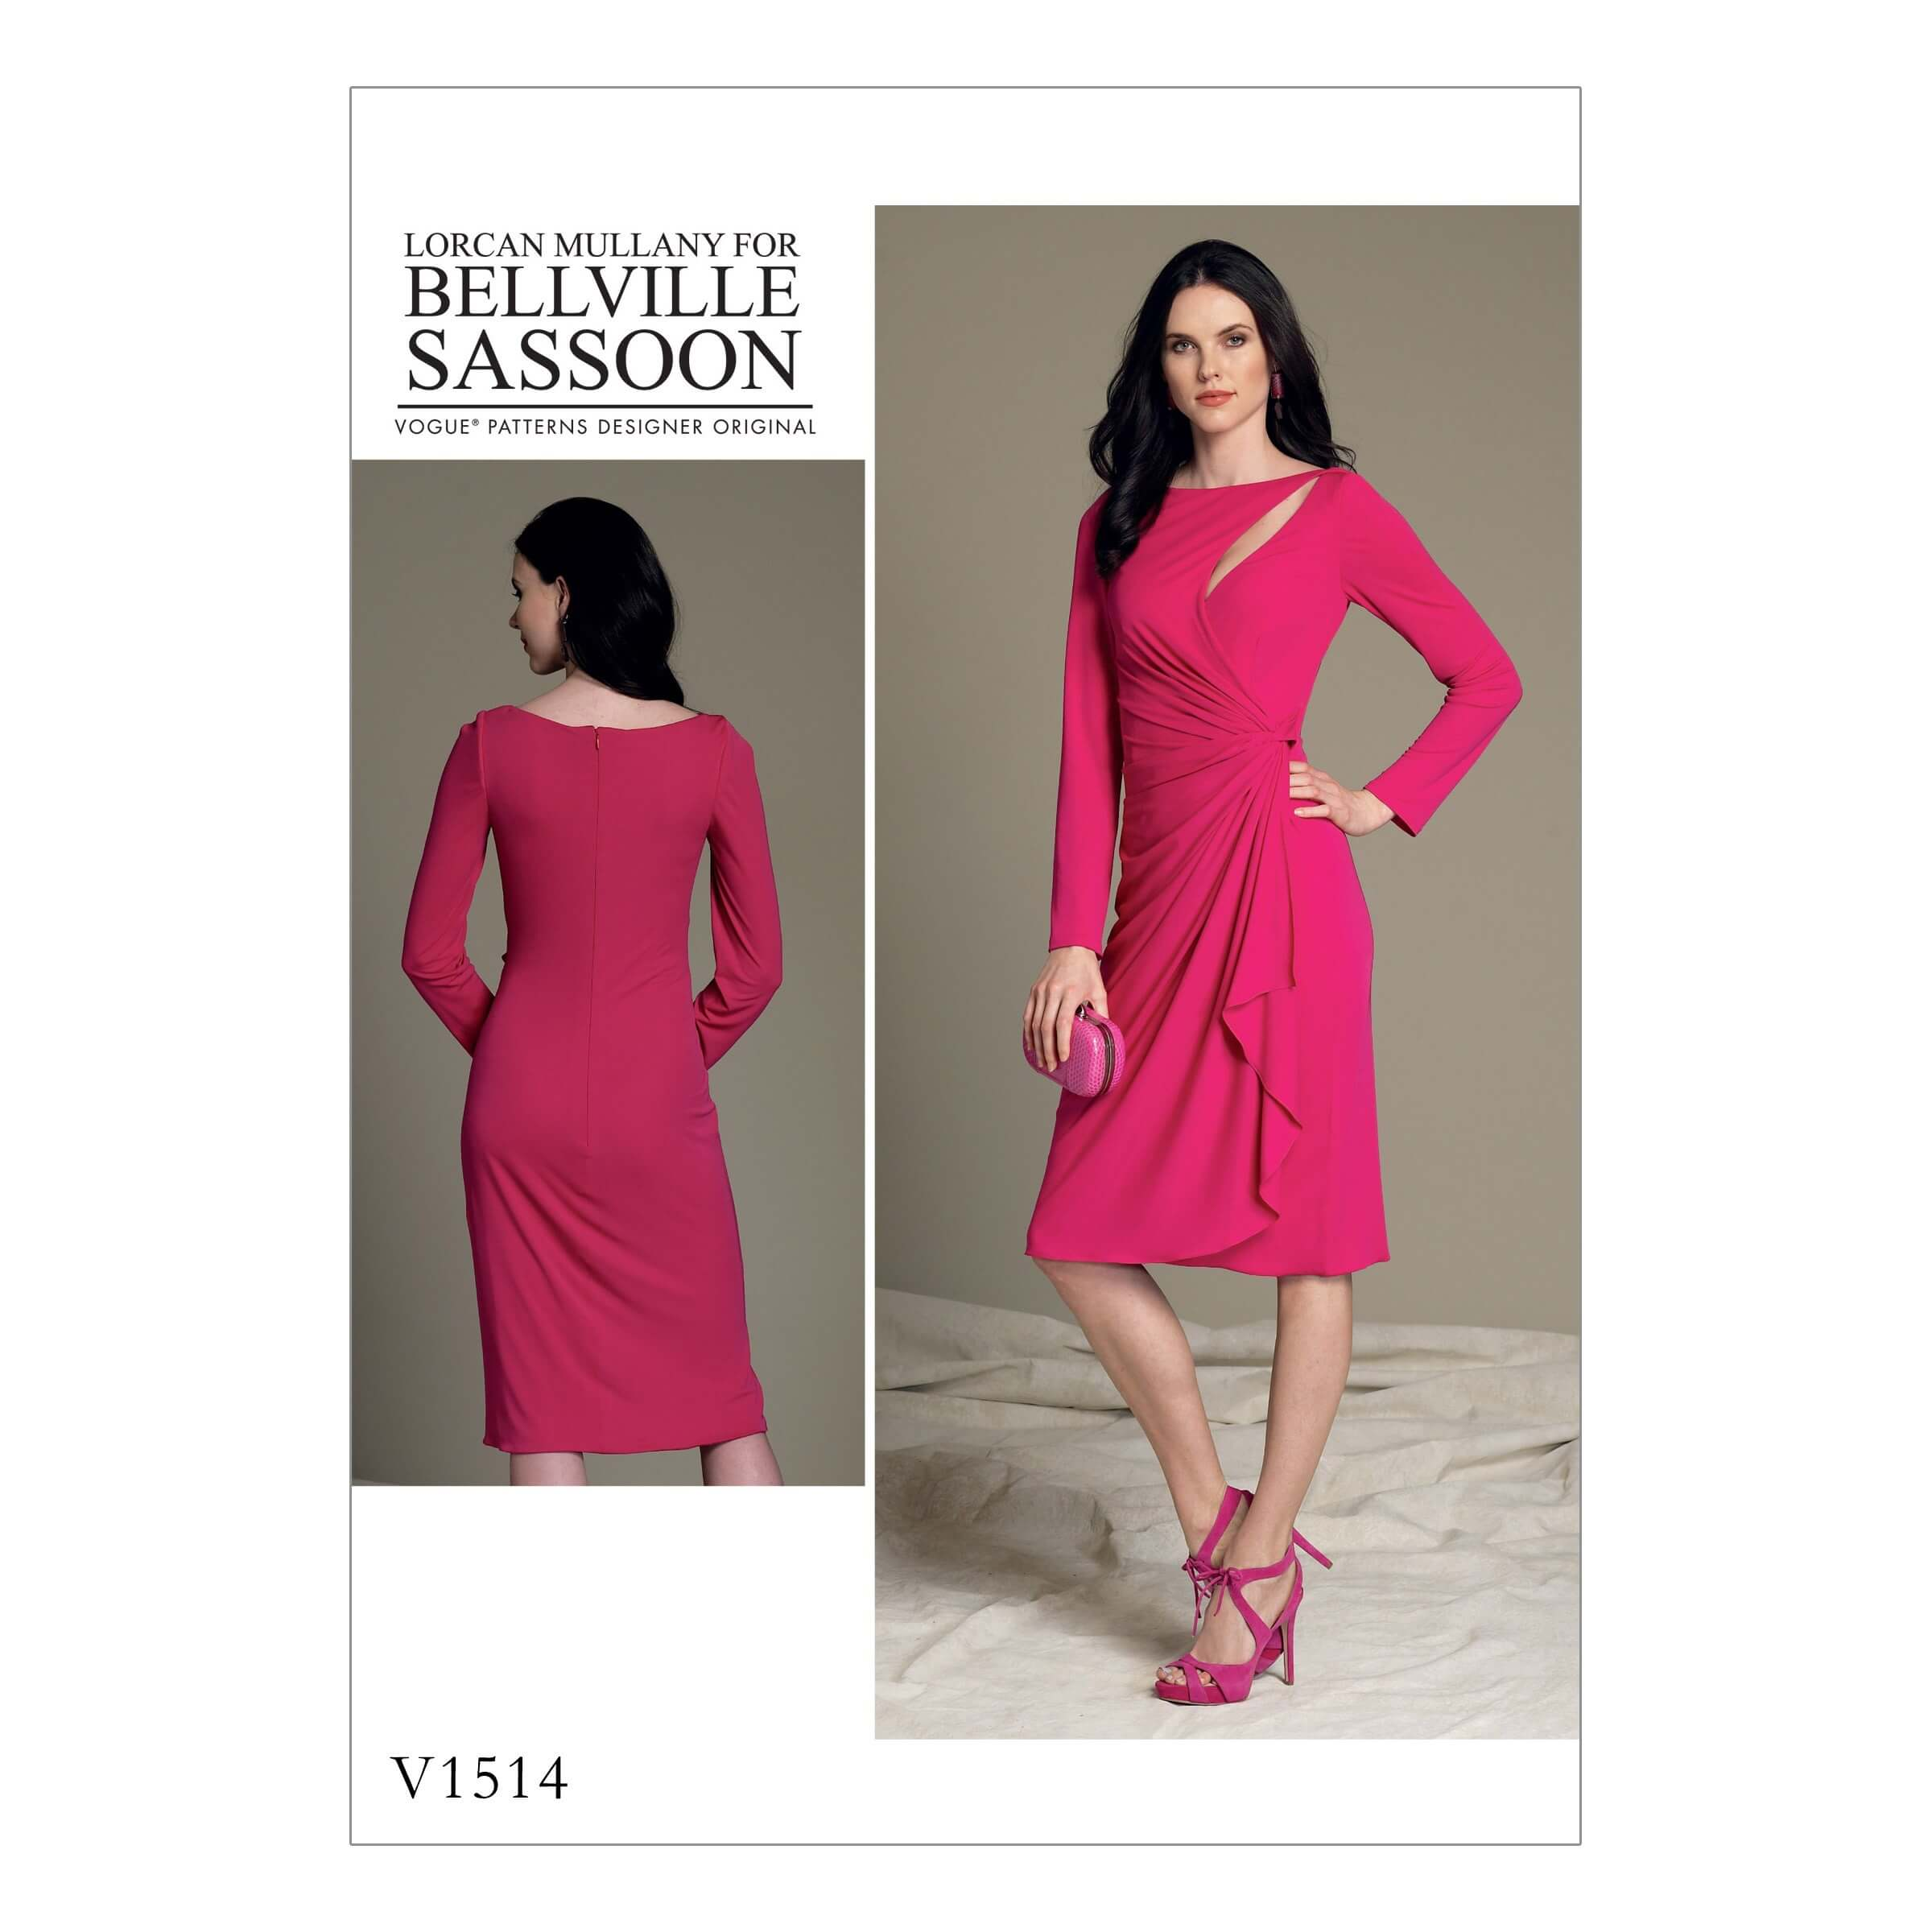 Vogue Sewing Pattern V1514 Women's Mock Wrap Cutout Dress